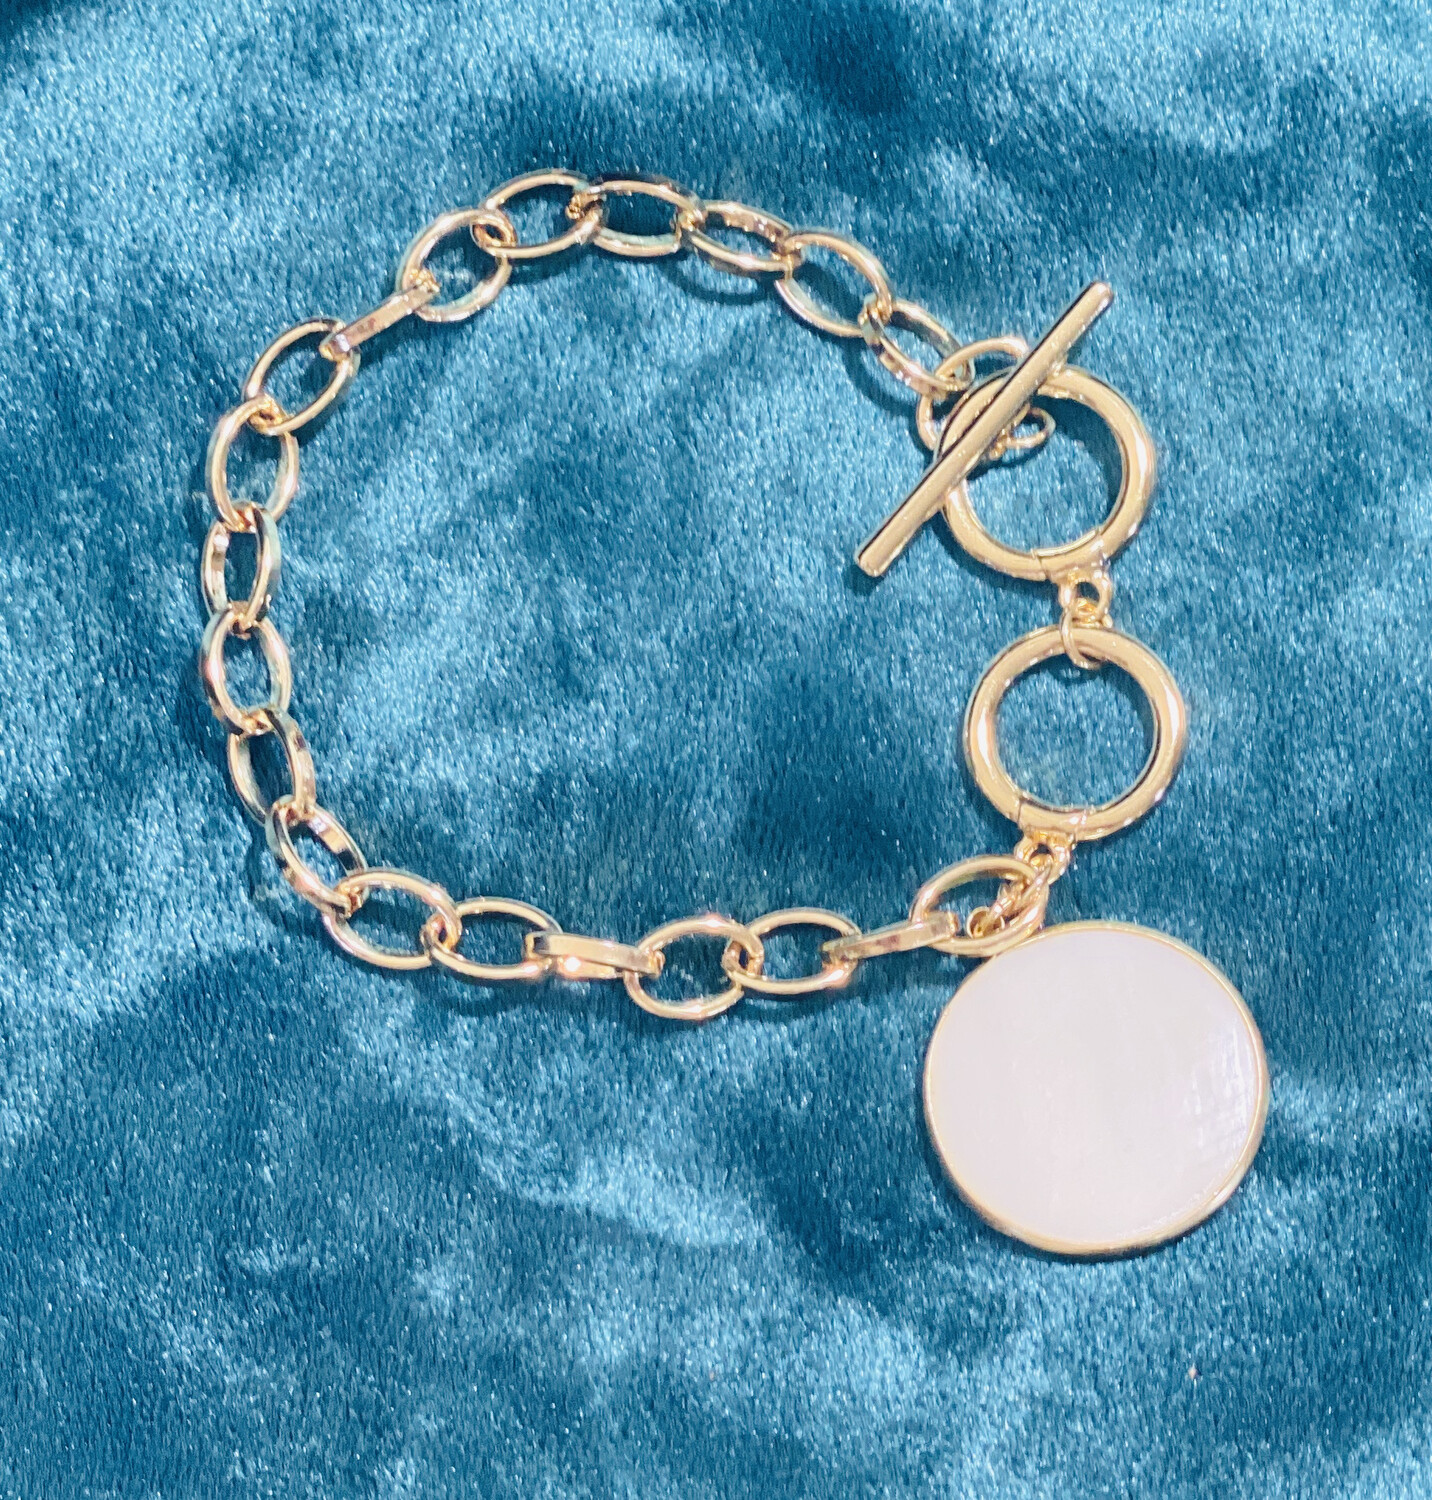 Bracelet Toggle with Shell Pendant